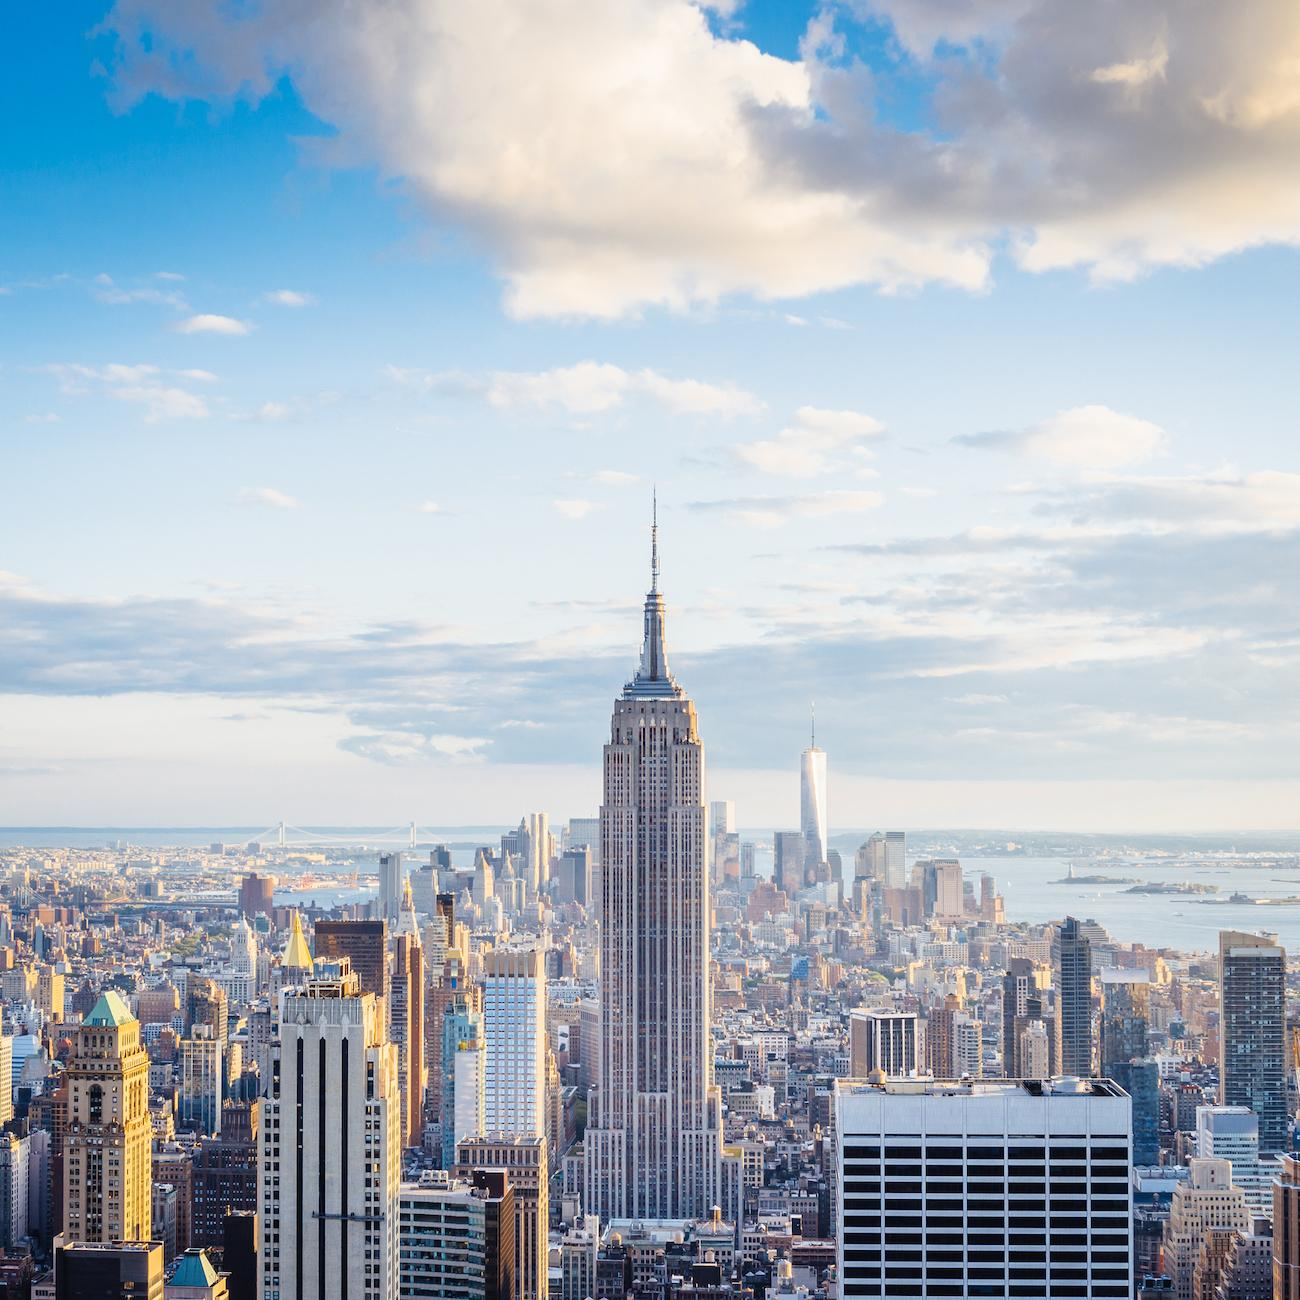 The Empire State Building / Image:{ }FilippoBacci, via Getty Images // Published: 5.15.19